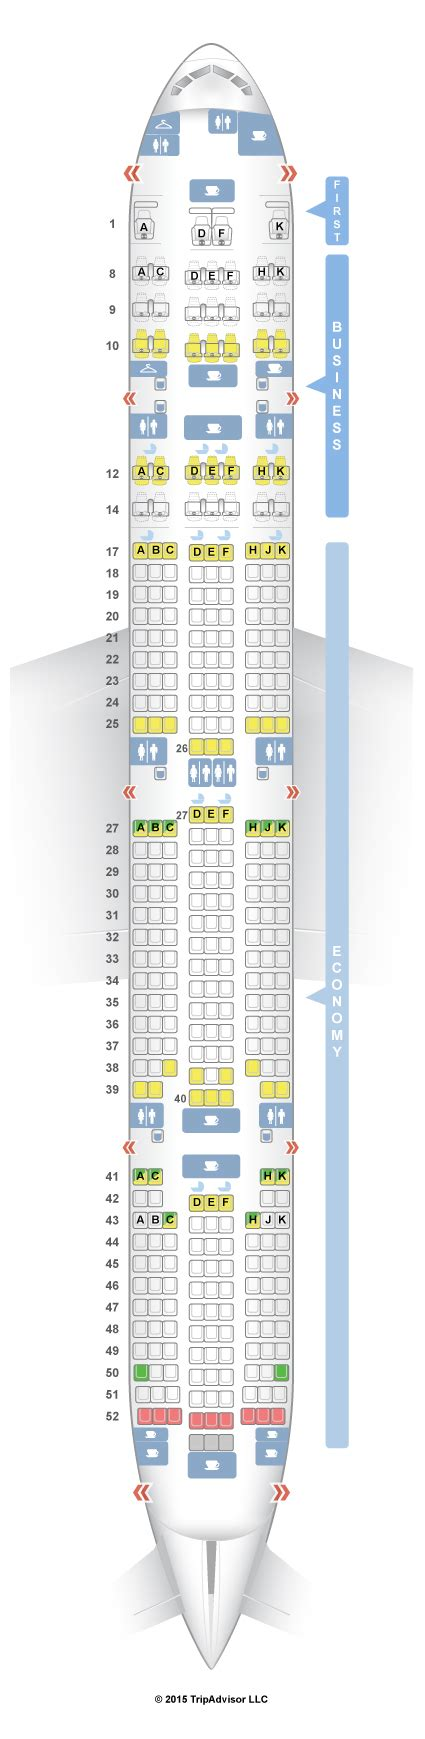 seat selection in air india seatguru seat map air india boeing 777 300er 77w